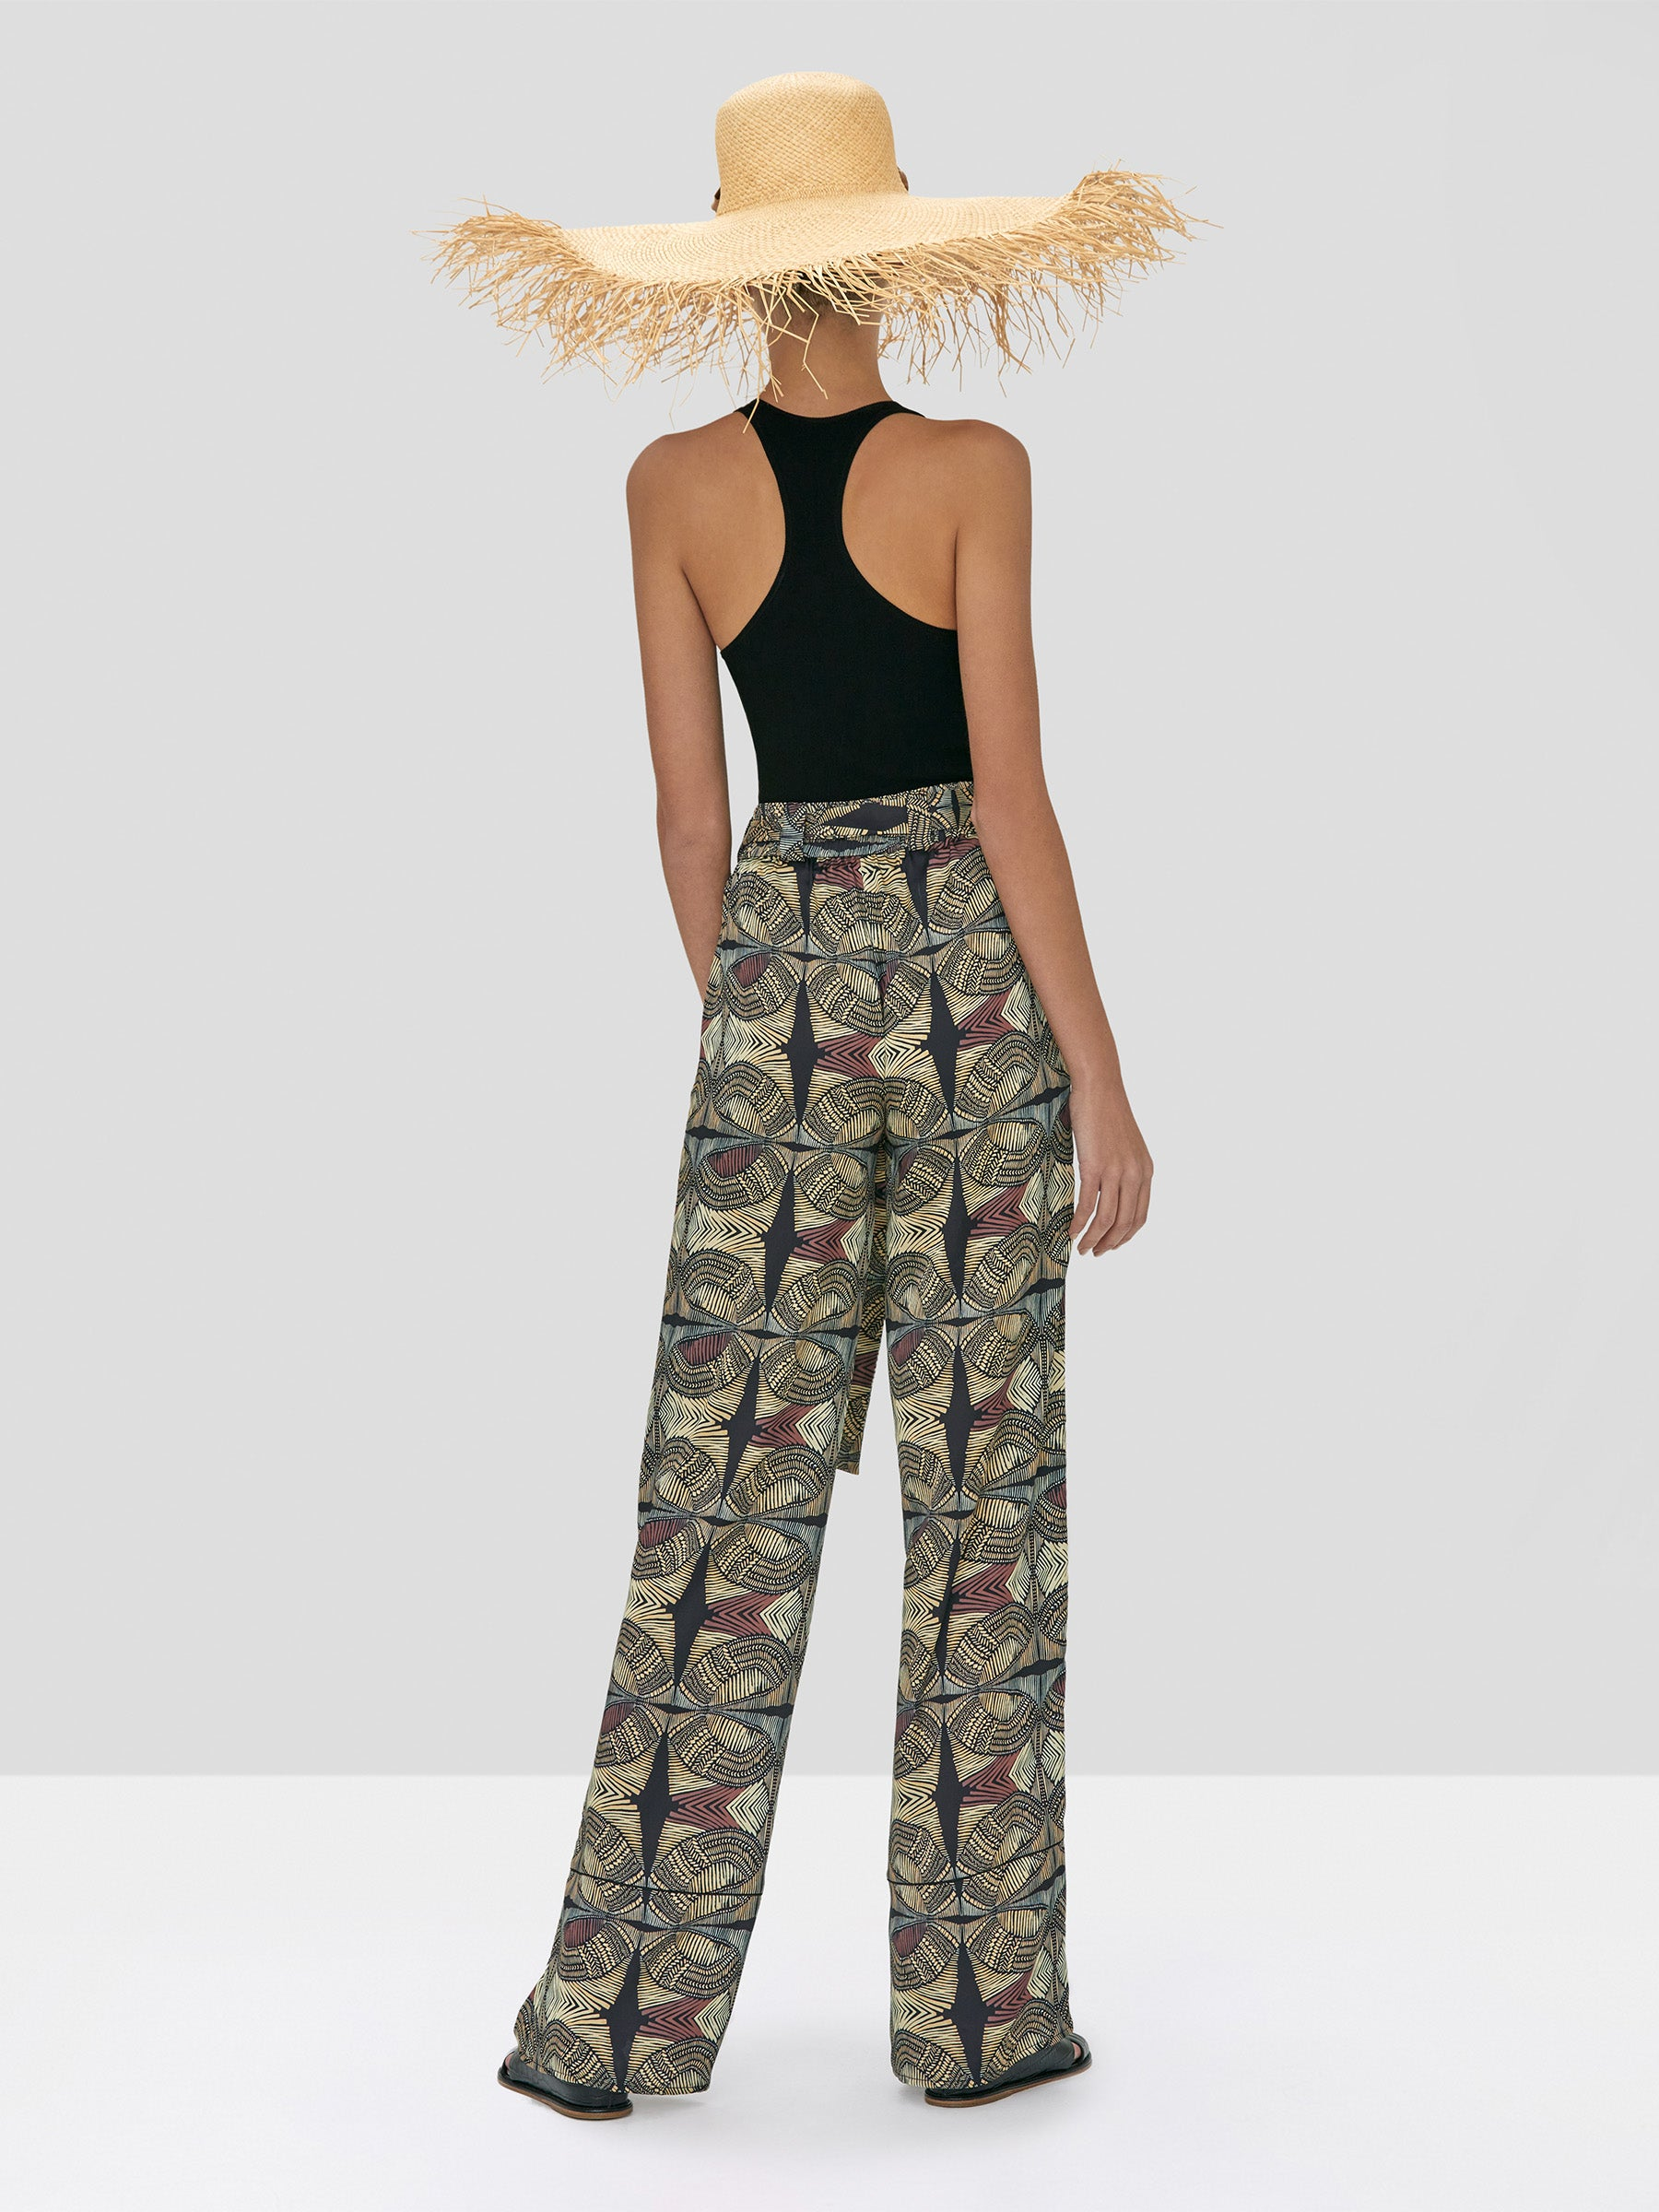 Alexis Zeni Top Black and Amptin Pant in Safari from Spring Summer 2020 Collection - Rear View